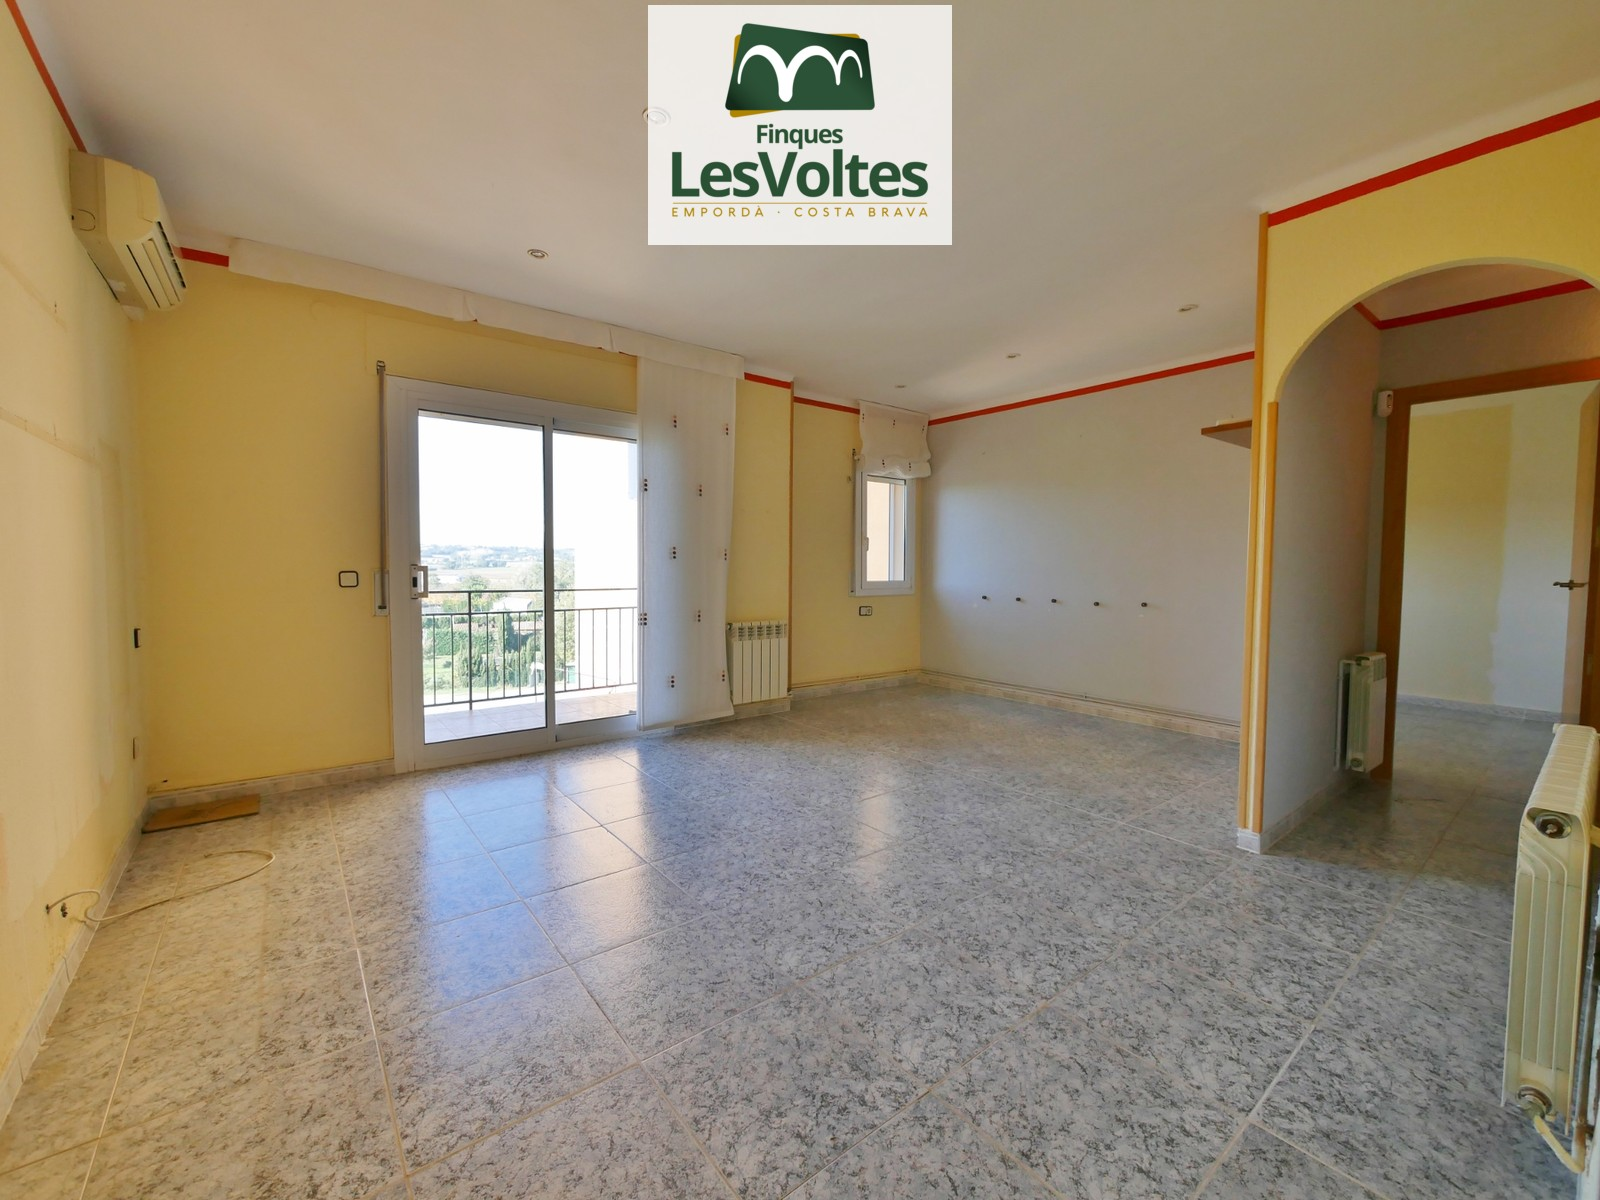 FLAT OF 74 M2 IN SECOND FLOOR WITHOUT ELEVATOR WITH 2 ROOMS FOR SALE IN LA BISBAL D'EMPORDÀ.